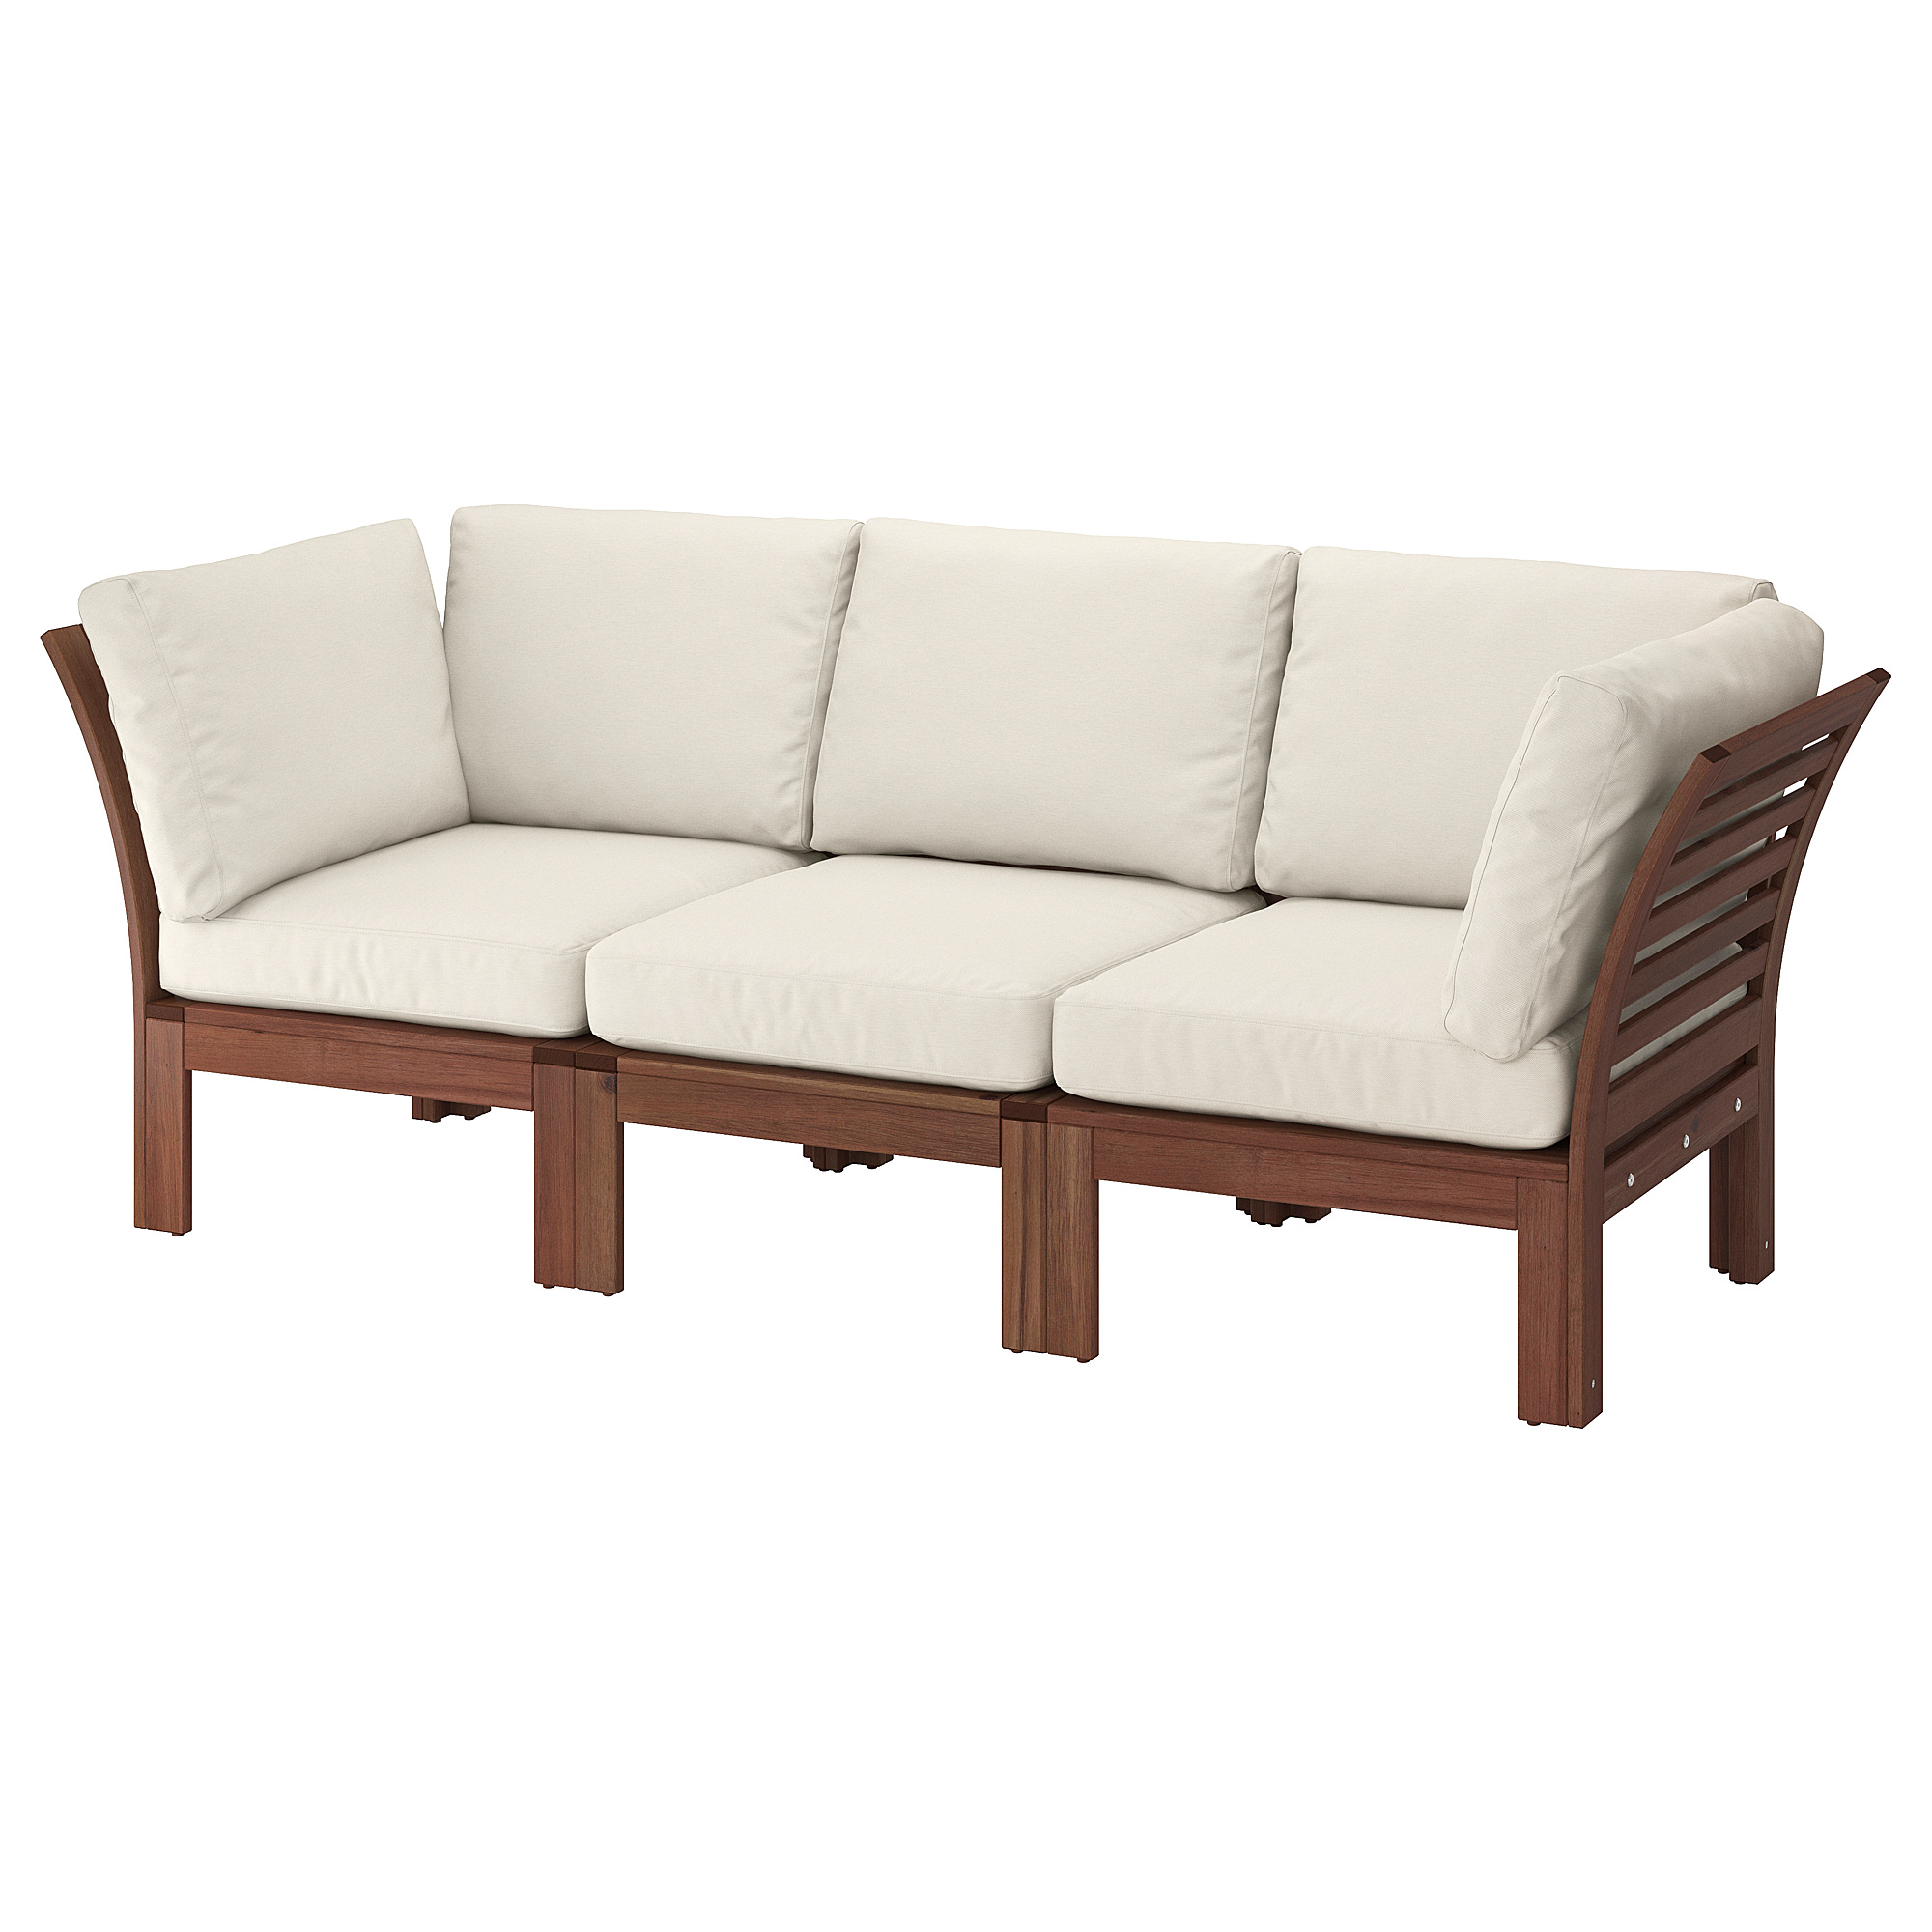 3-seat modular sofa, outdoor ÄPPLARÖ brown stained, Frösön/Duvholmen beige